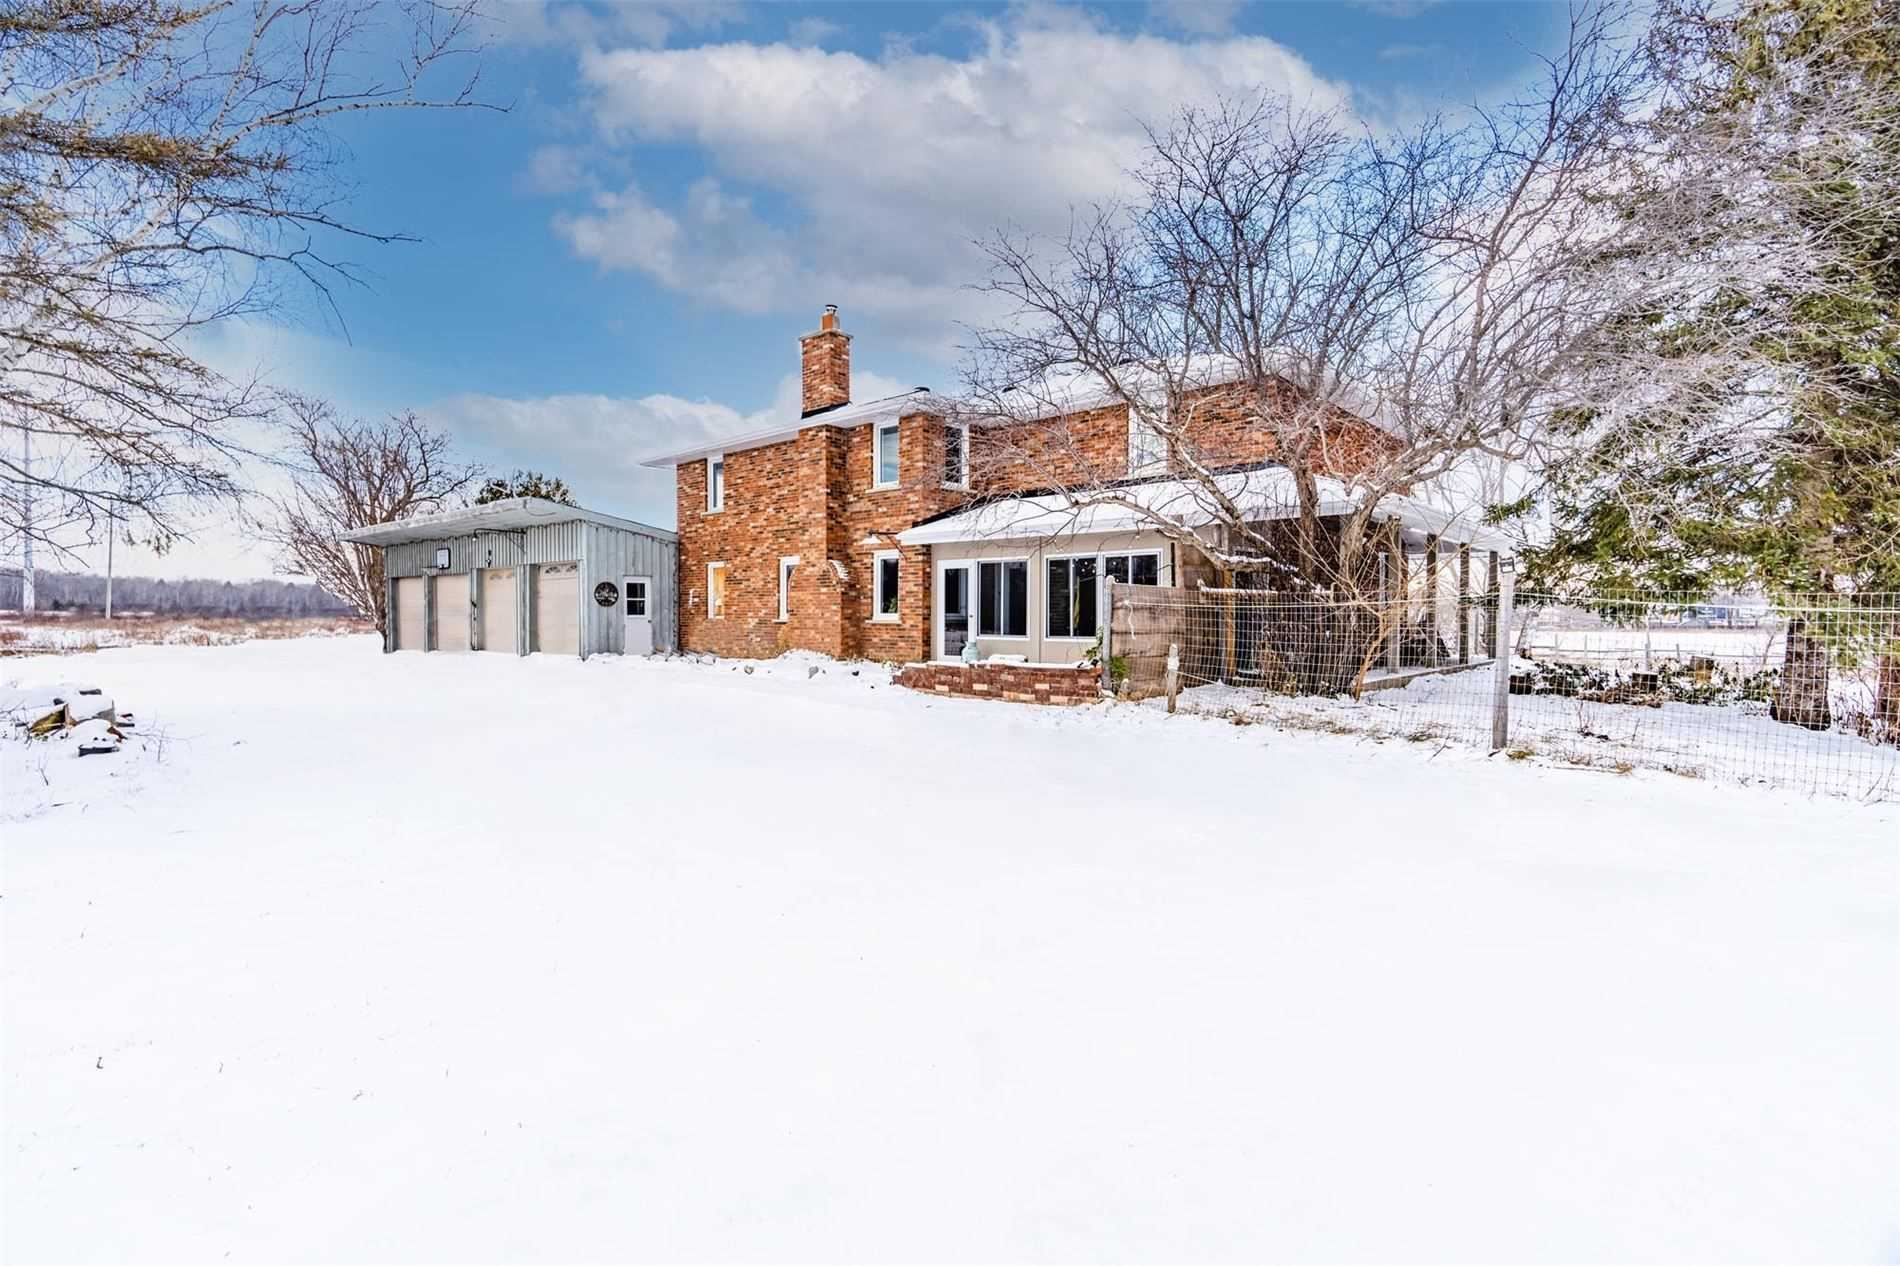 1166 County Road 42, Clearview, ON L0M 1S0 - MLS#: S5395883